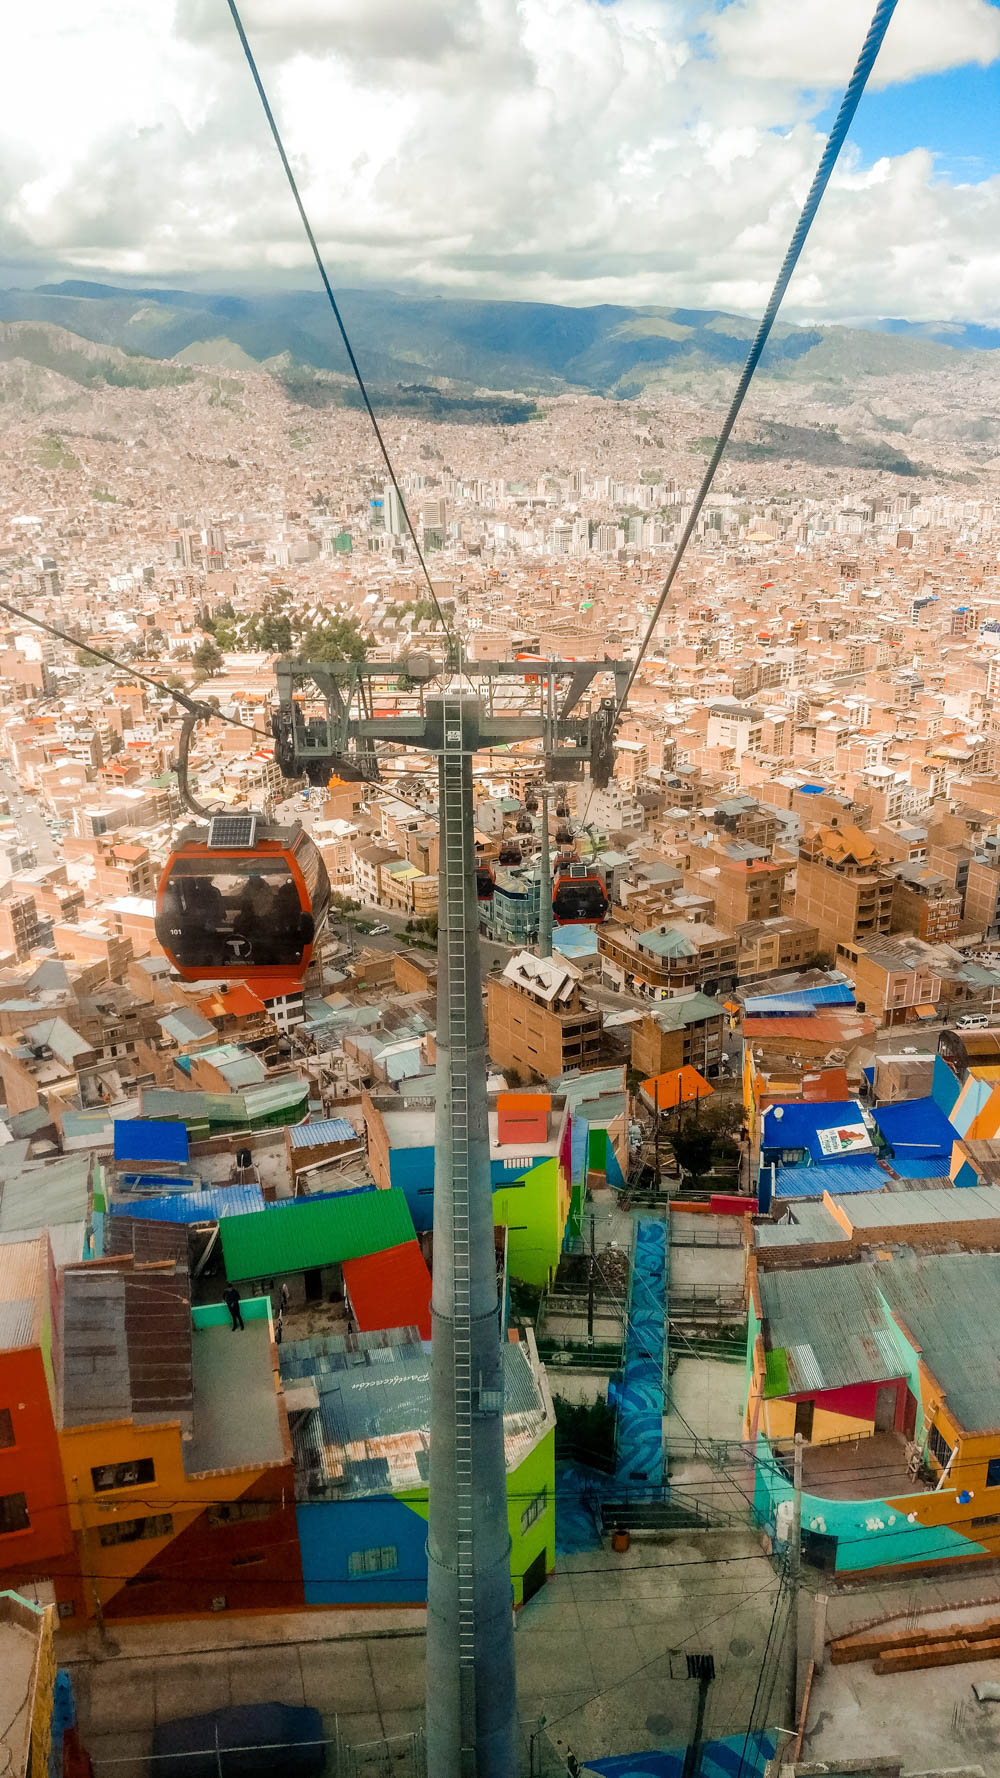 Mi Teleférico (cable car network) - Best places to visit in La Paz, Bolivia | Aliz's Wonderland